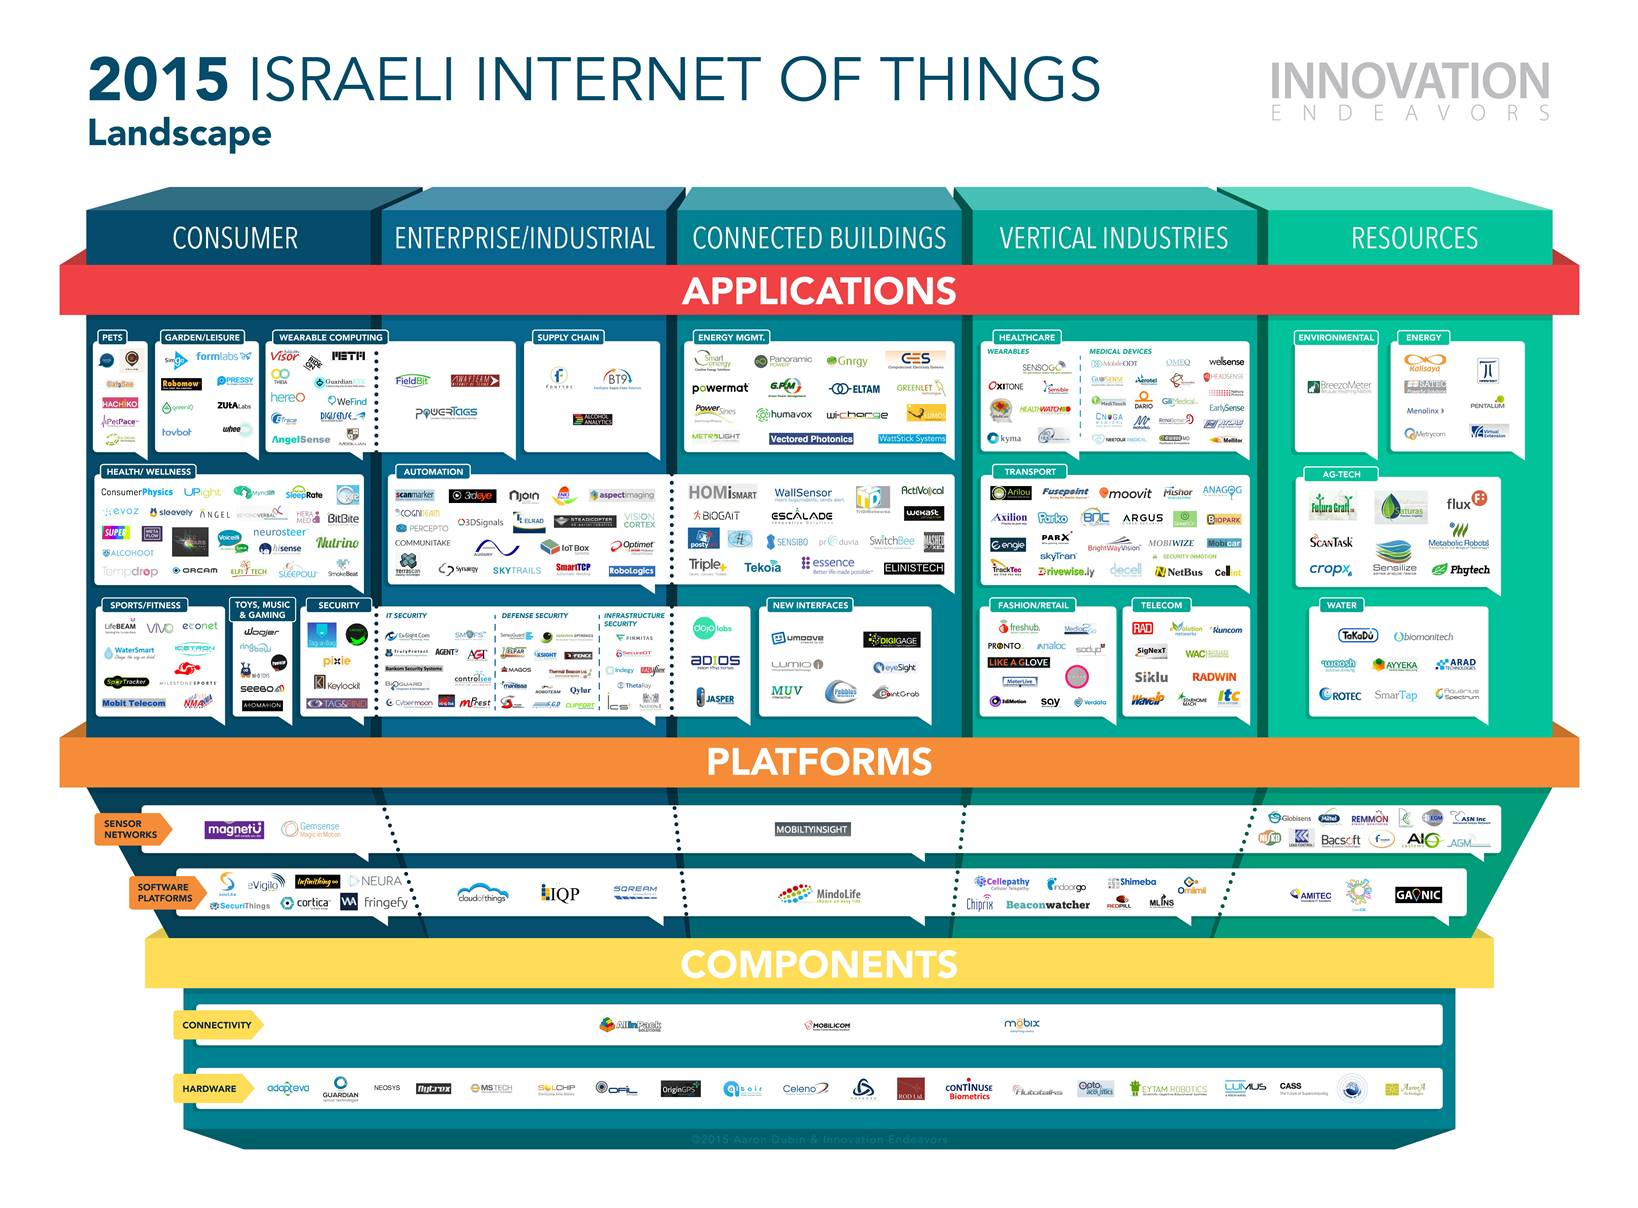 Innovation Endeavors' Israel IoT Landscape. Image courtesy